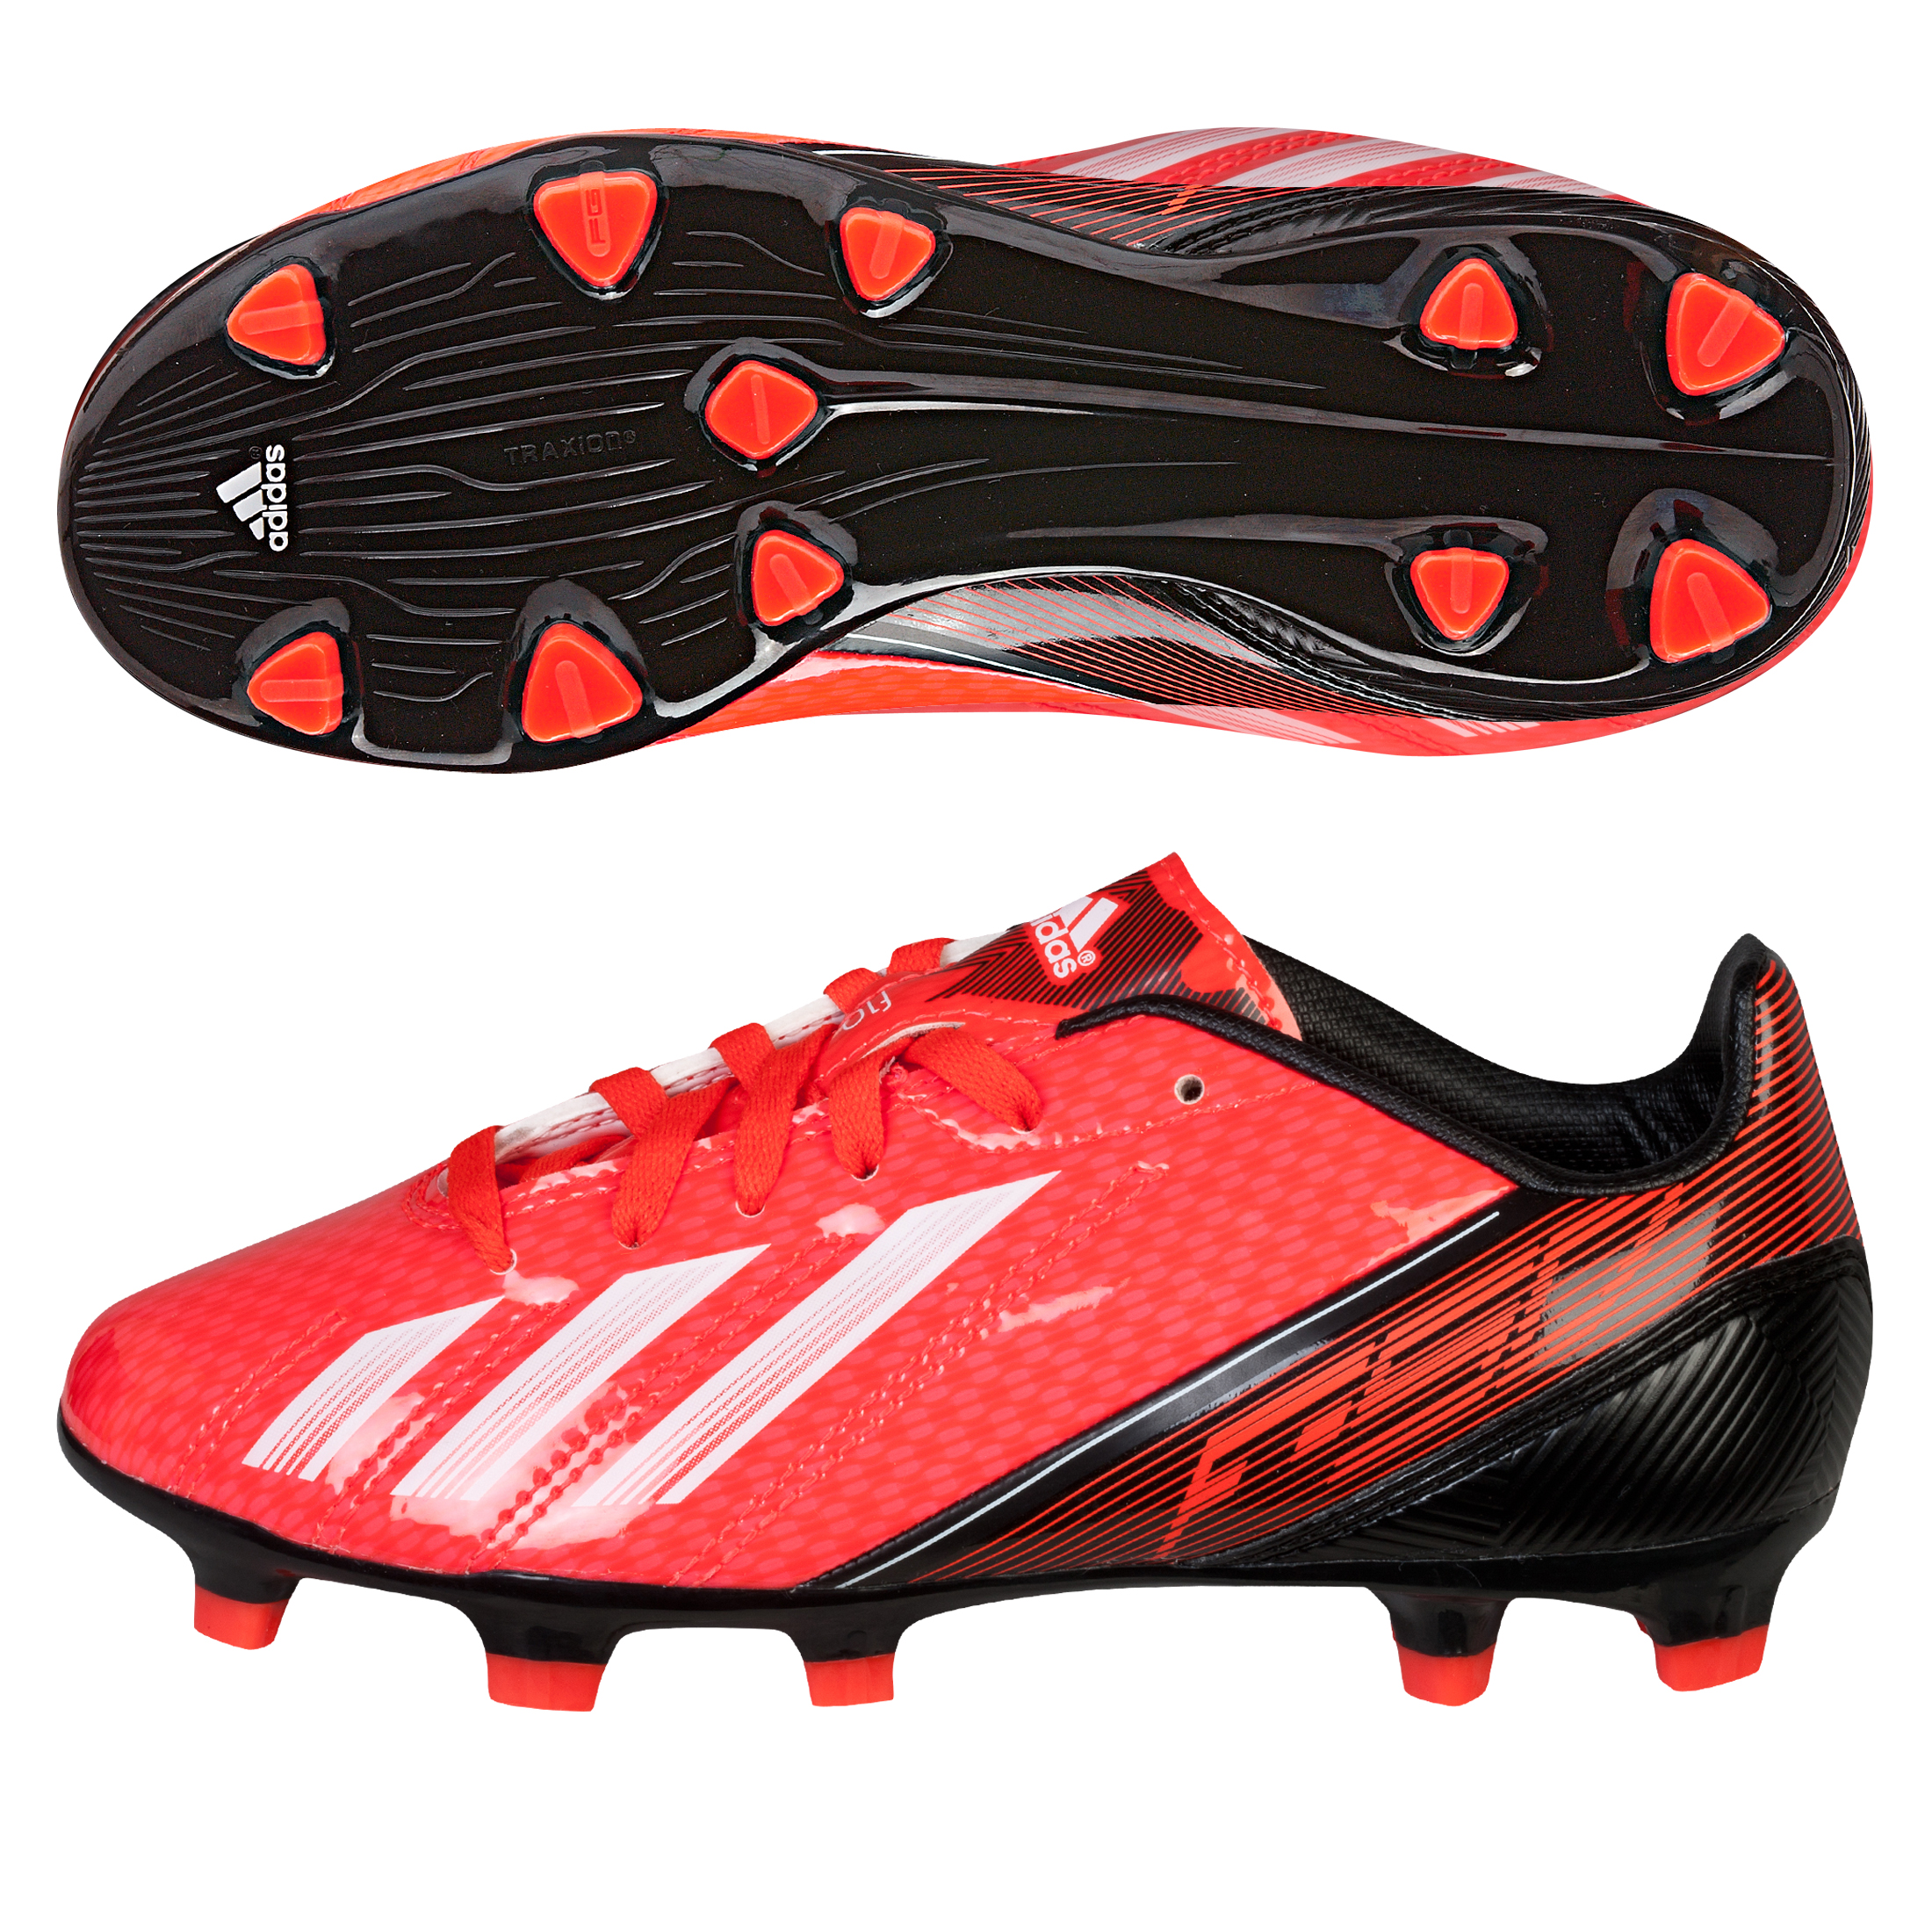 Adidas F10 TRX Firm Ground Football Boots - Kids Red